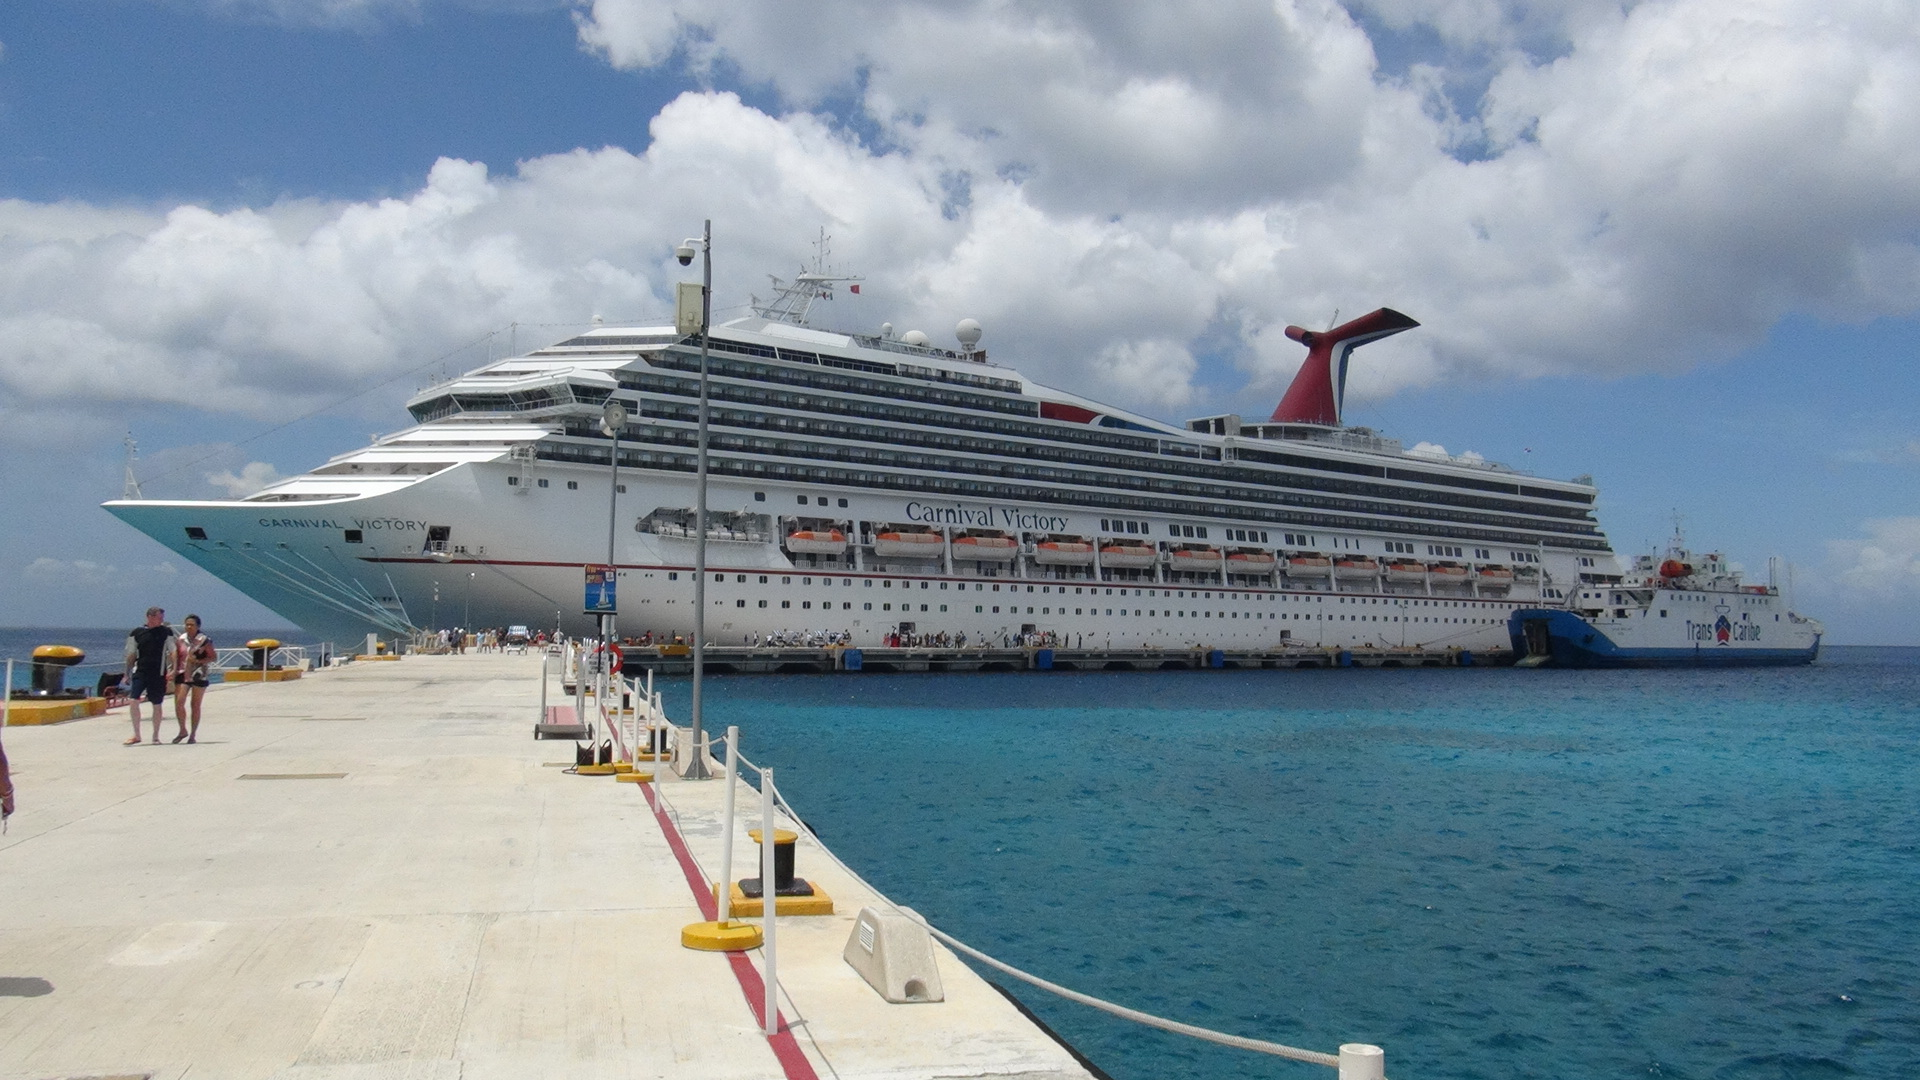 Carnival Victory Cruise Ship Review